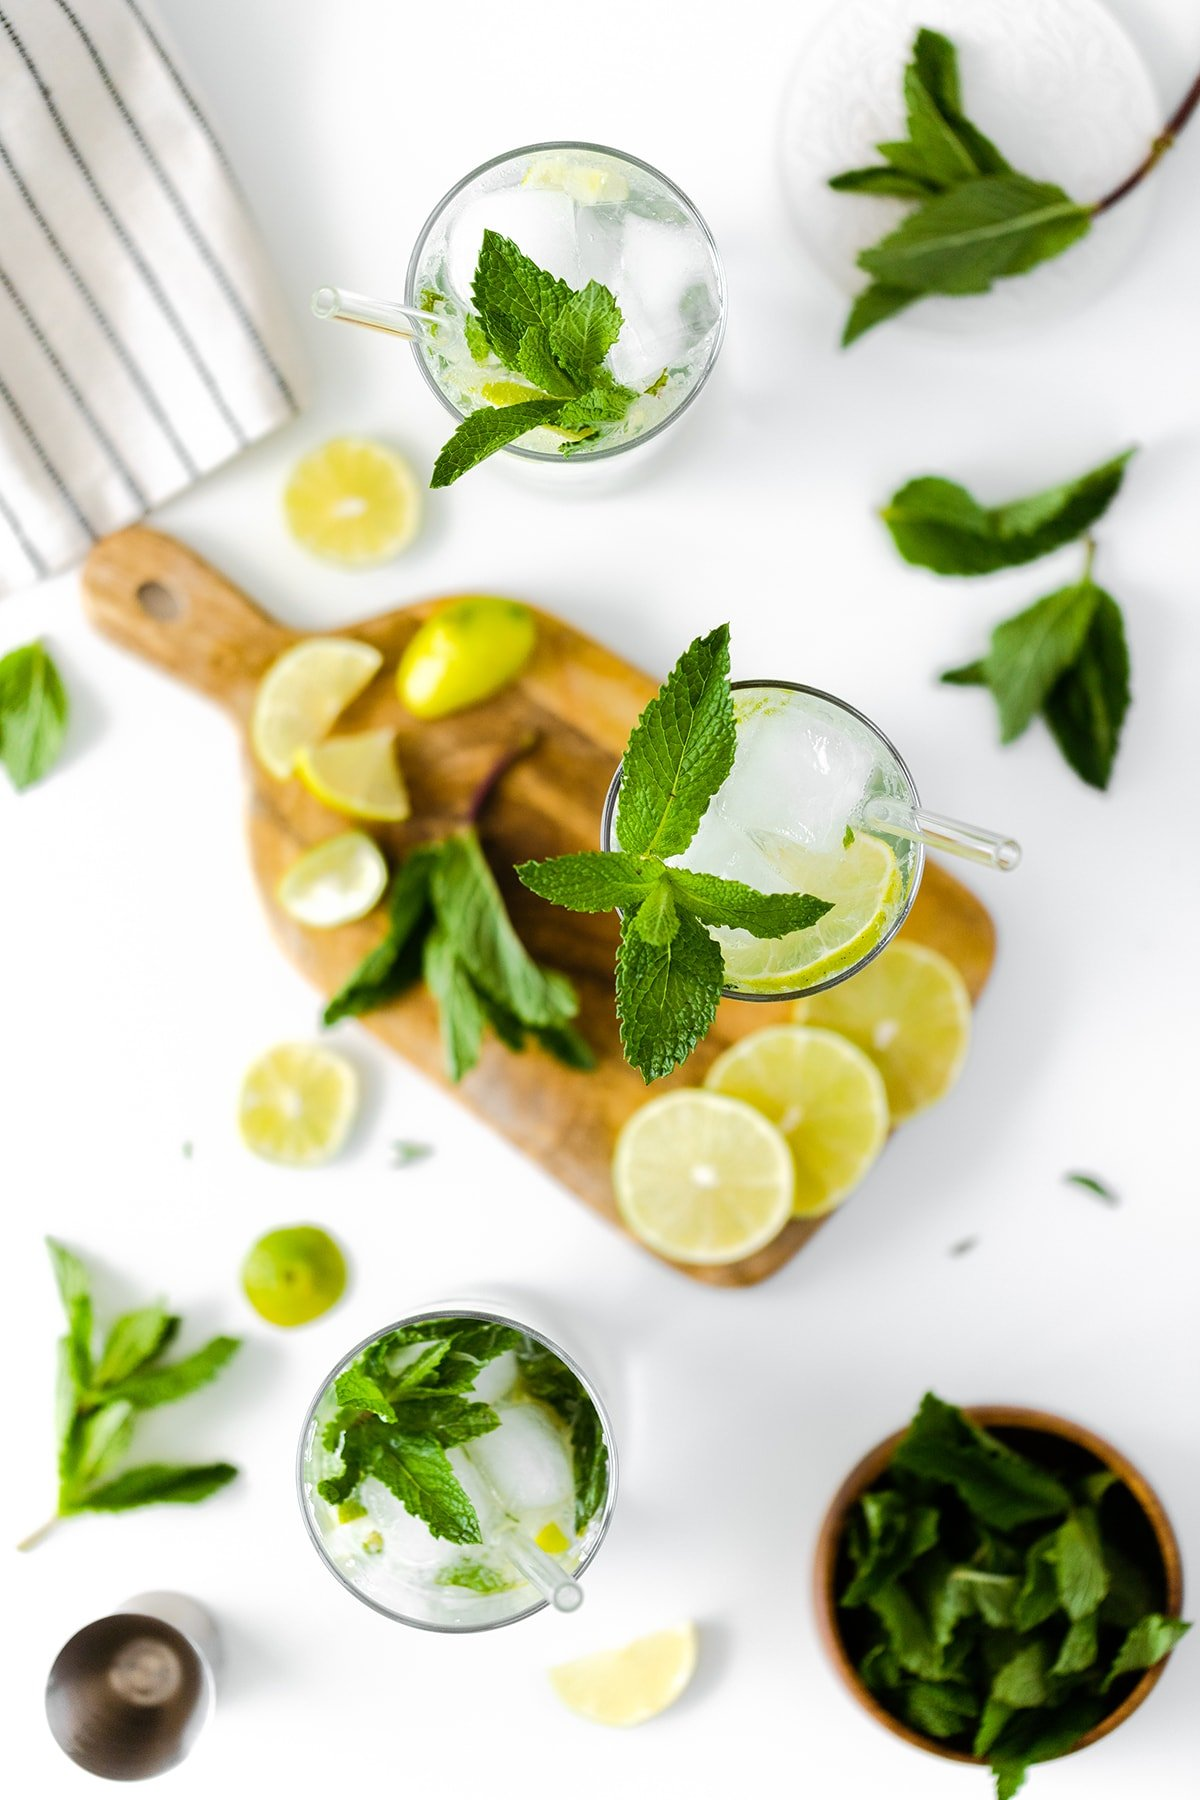 A wide overhead photo of mojitos on a white background with wooden board and a washcloth